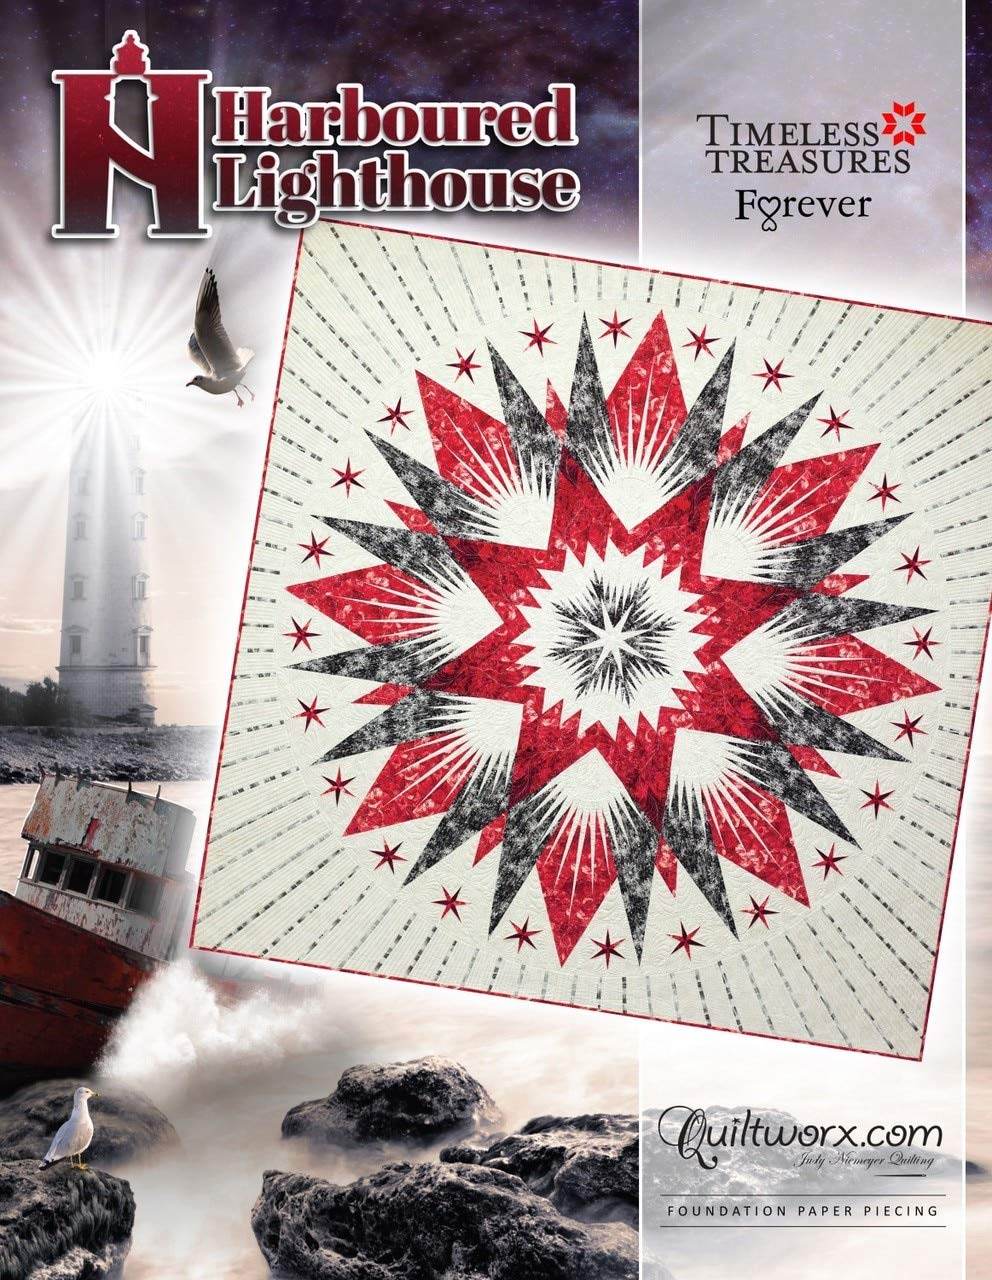 Harboured Lighthouse Quilt Pattern 96 x 96~Foundation Paper Piecing Pattern by Judy Niemeyer of Quiltworx by Judy Niemeyer